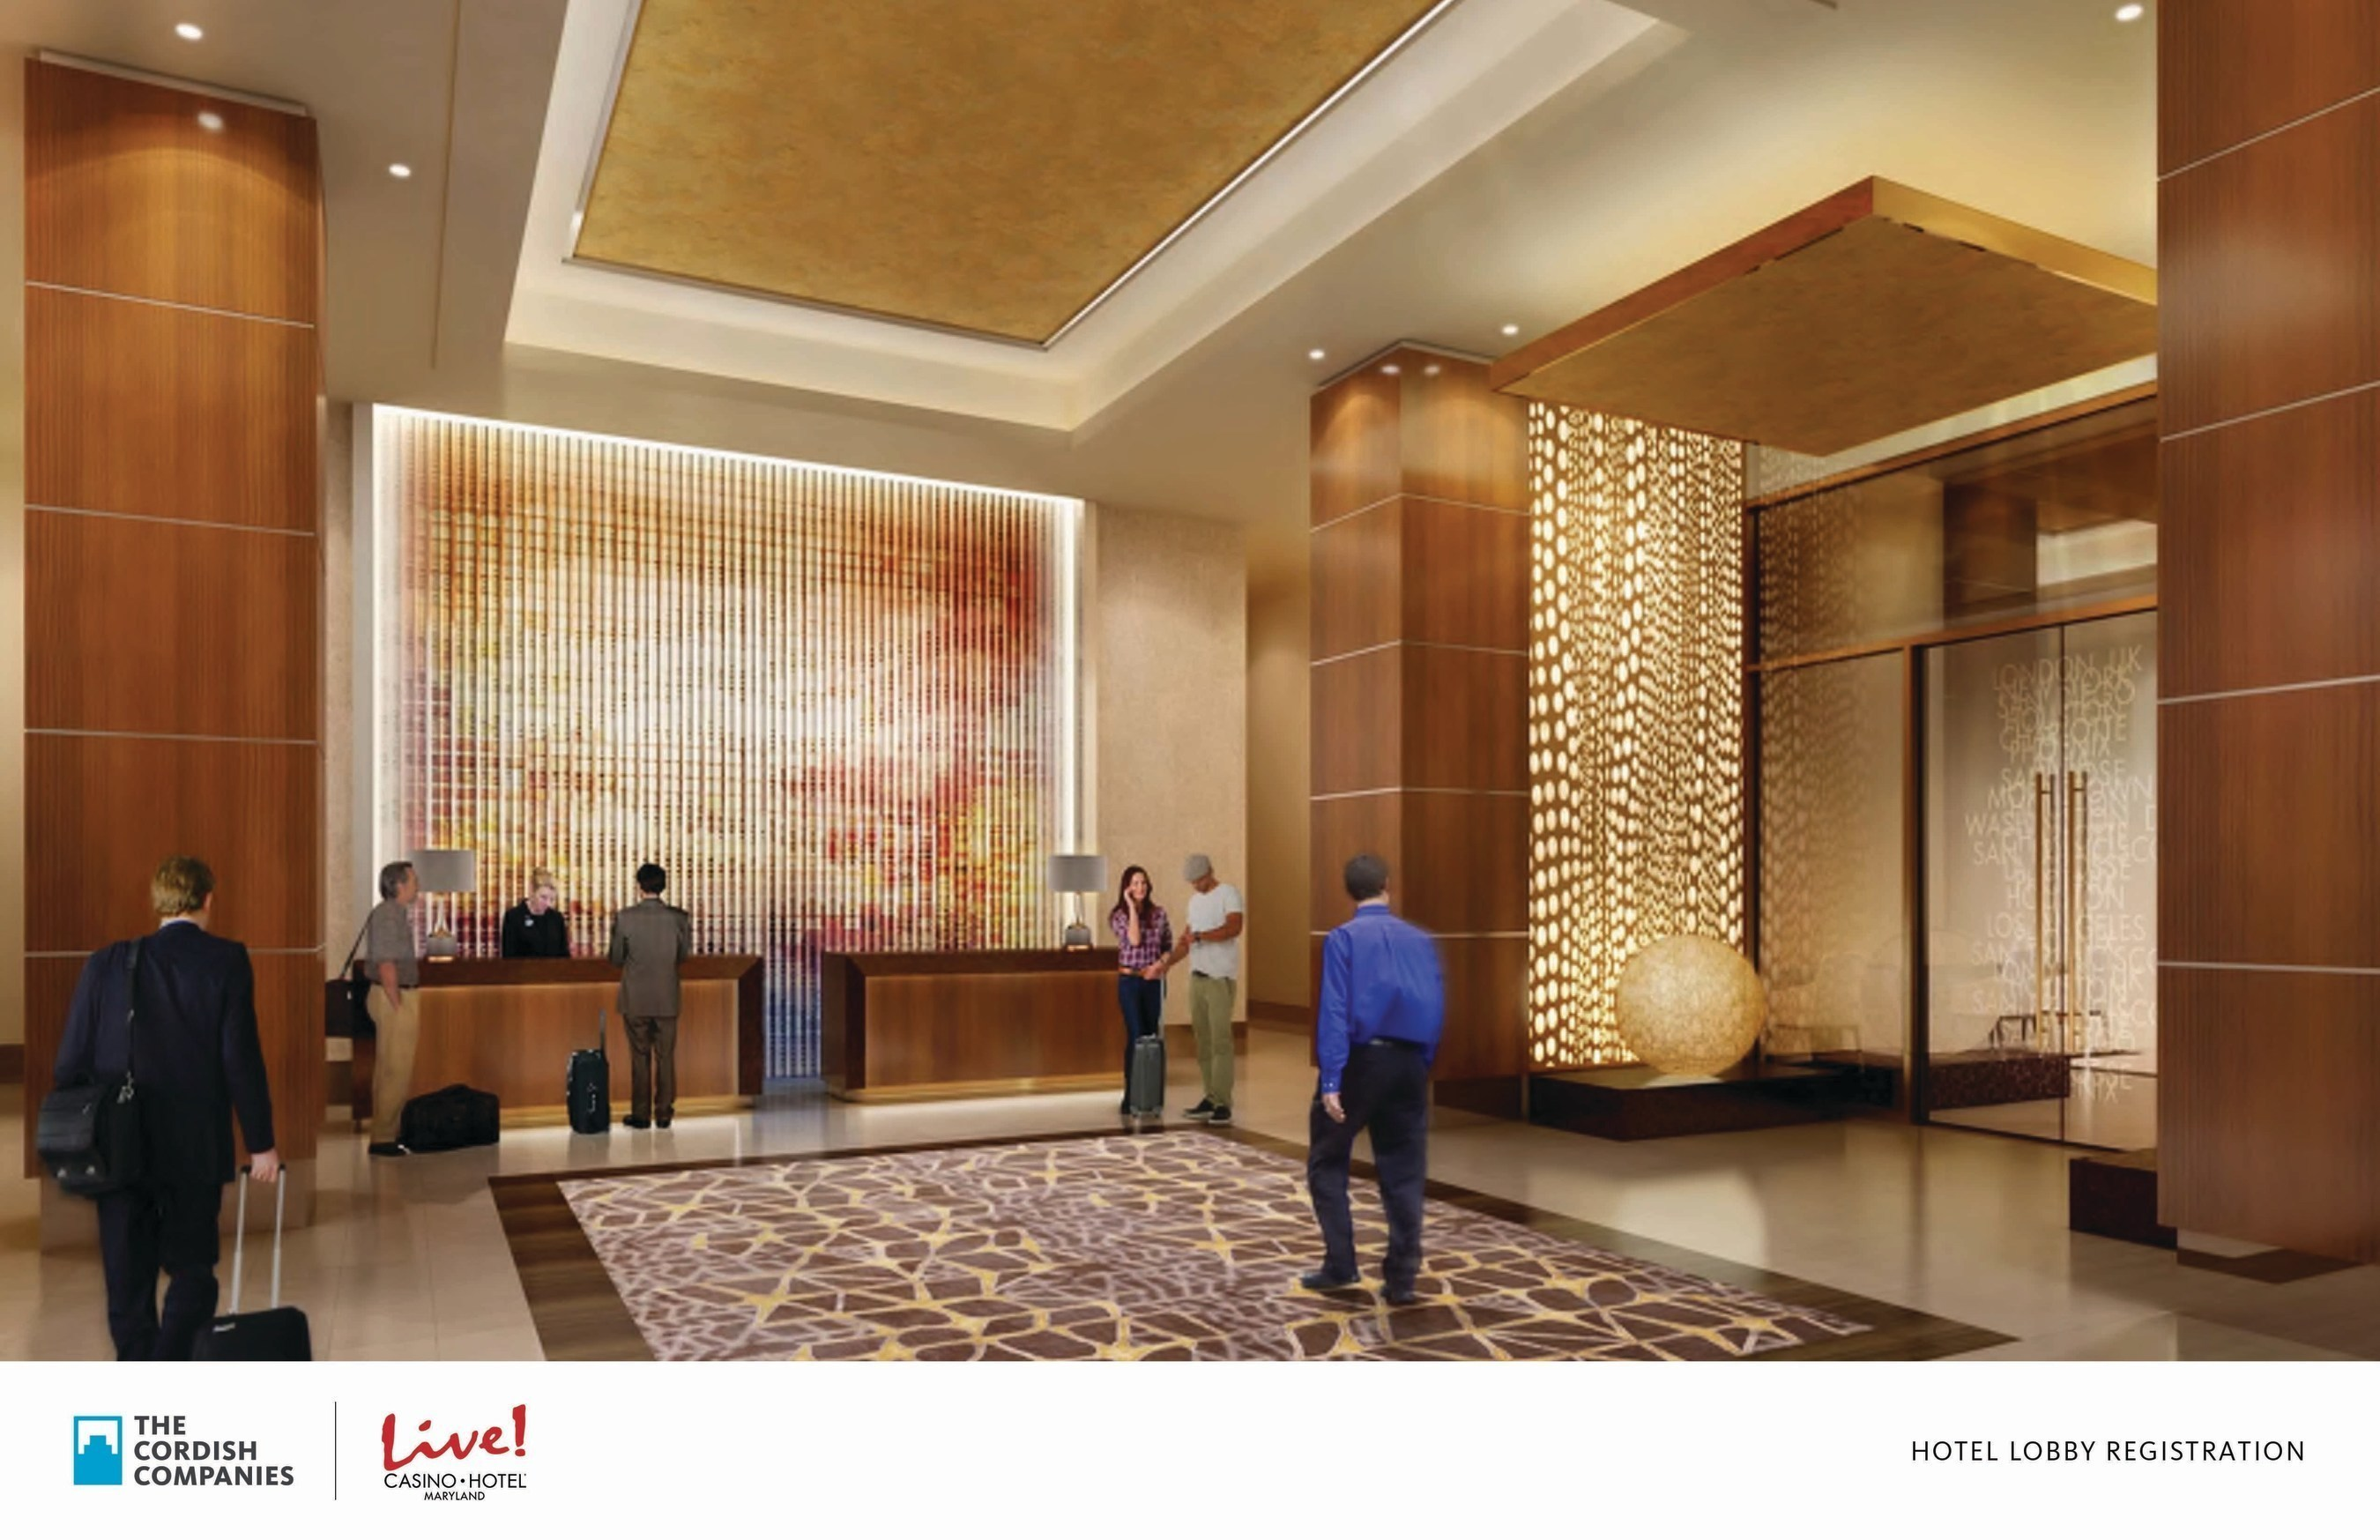 An artists' rendering depicts the Hotel Lobby of the new $200 million flagship Live! Hotel. The Cordish Companies today broke ground on the development, which will be located at Maryland Live! Casino, in Hanover, MD. The 350,000- square- foot property features a 17-story hotel tower, making it the tallest building in Anne Arundel County, with 310 guest rooms, an event center, meeting spaces, new dining options, and a day spa/salon. It is the first hotel in the country to carry the Live! brand.